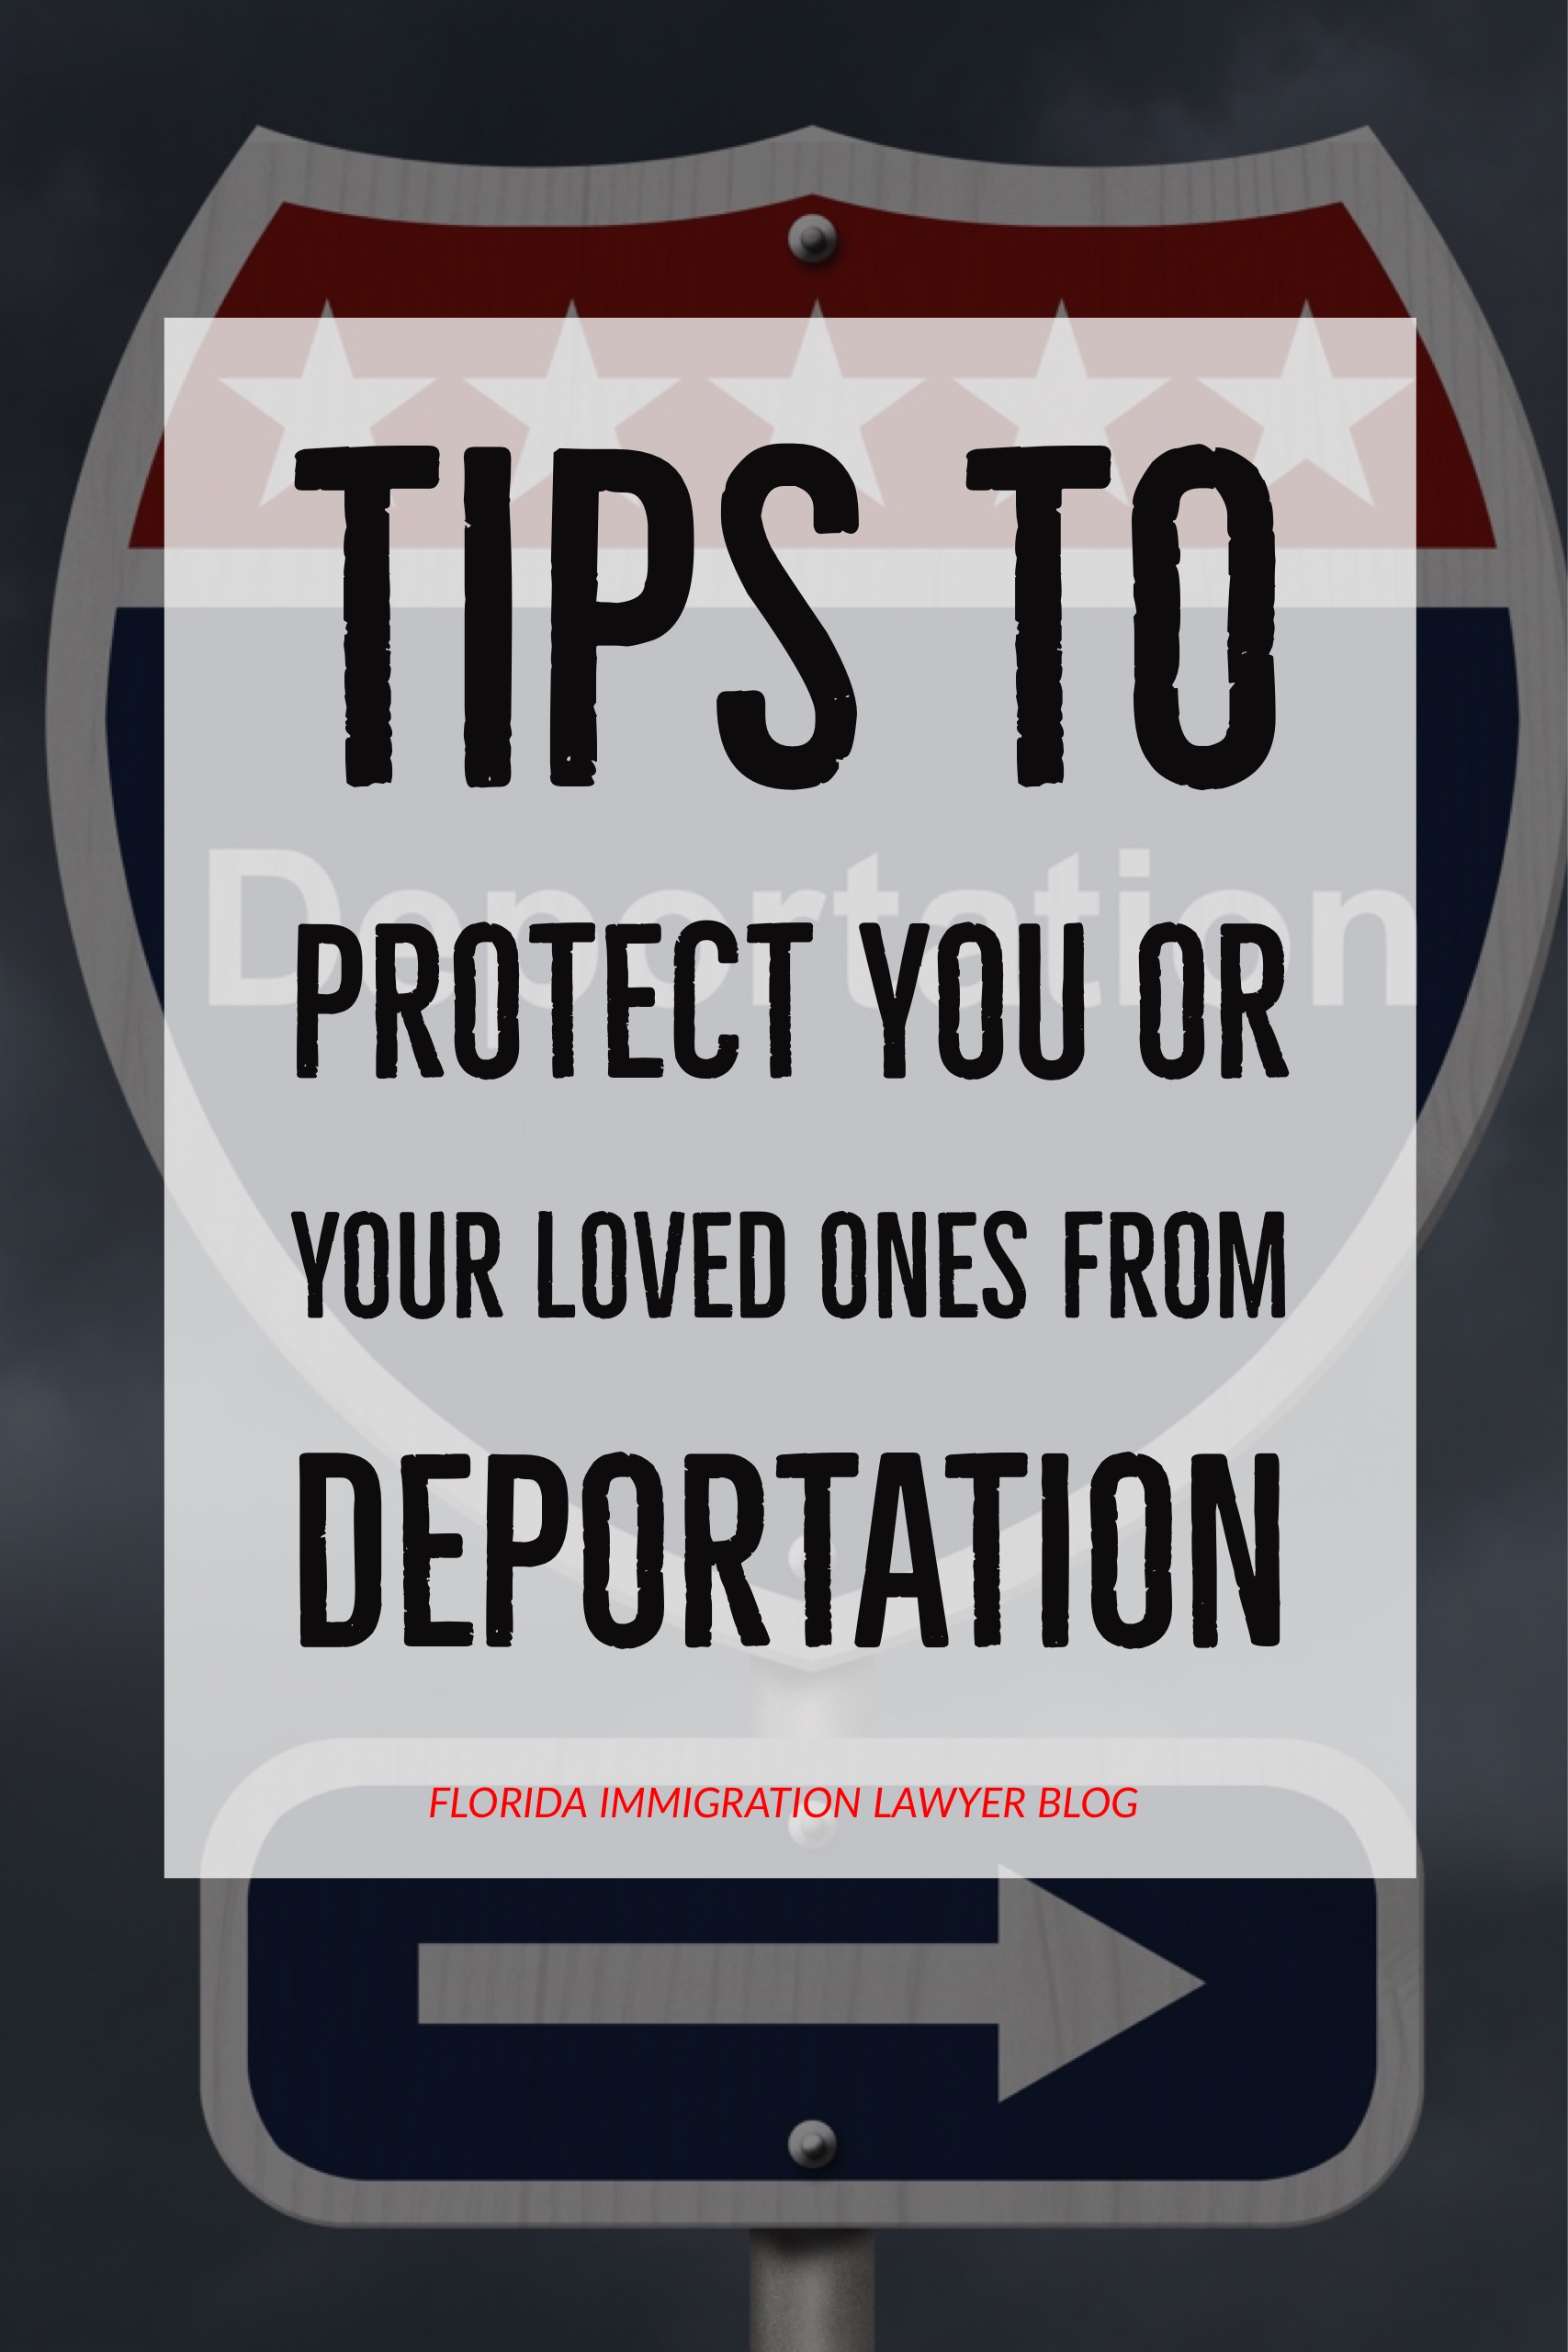 Tips-for-deportation-blog